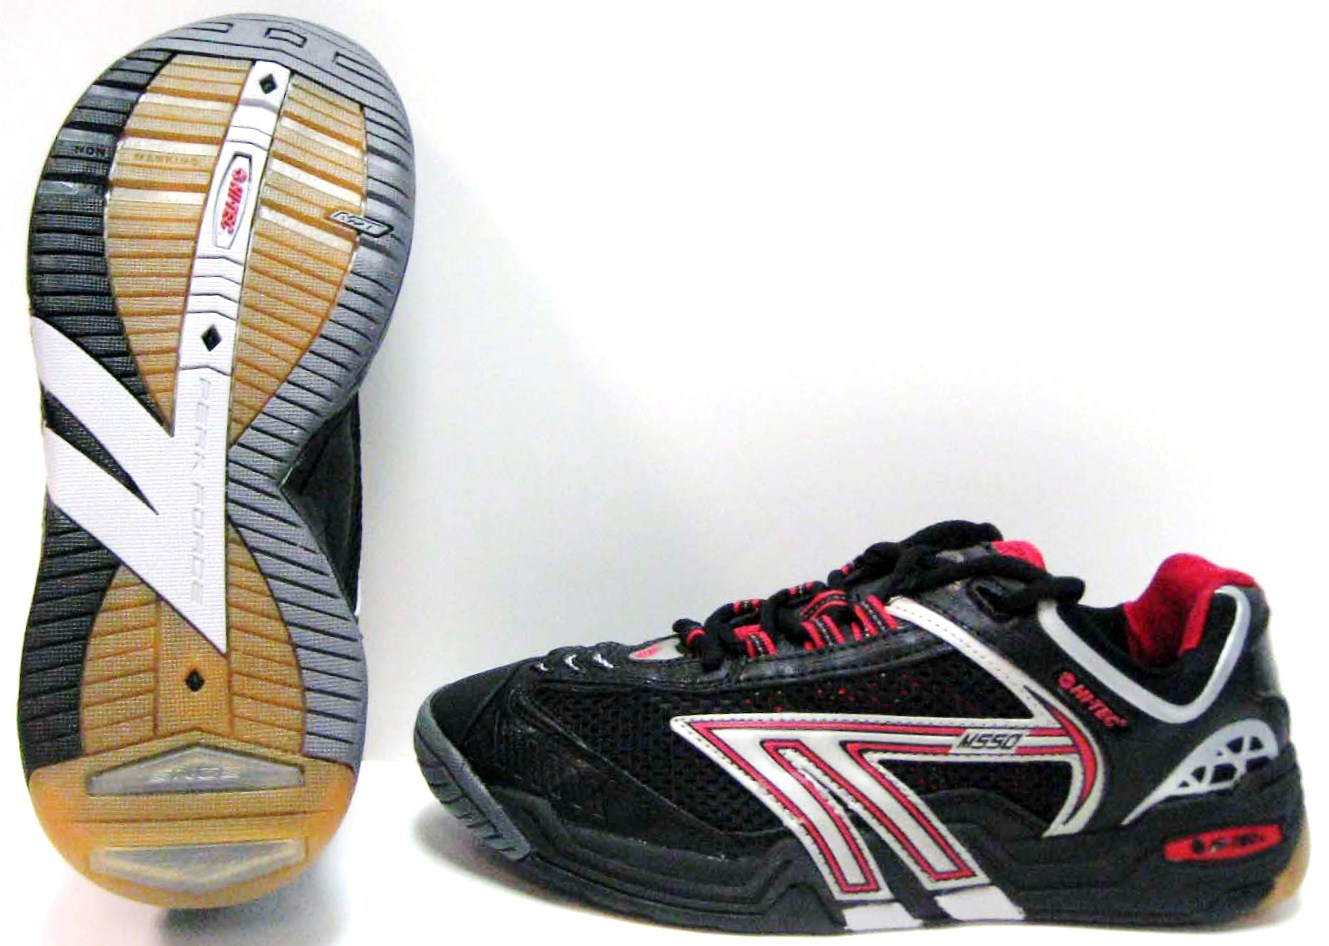 Hi-Tec M550 Squash Men's Shoe (Black/Red/Silver) - ONLY SIZE 7, 8, 8.5, 11.5 & 14 LEFT IN STOCK